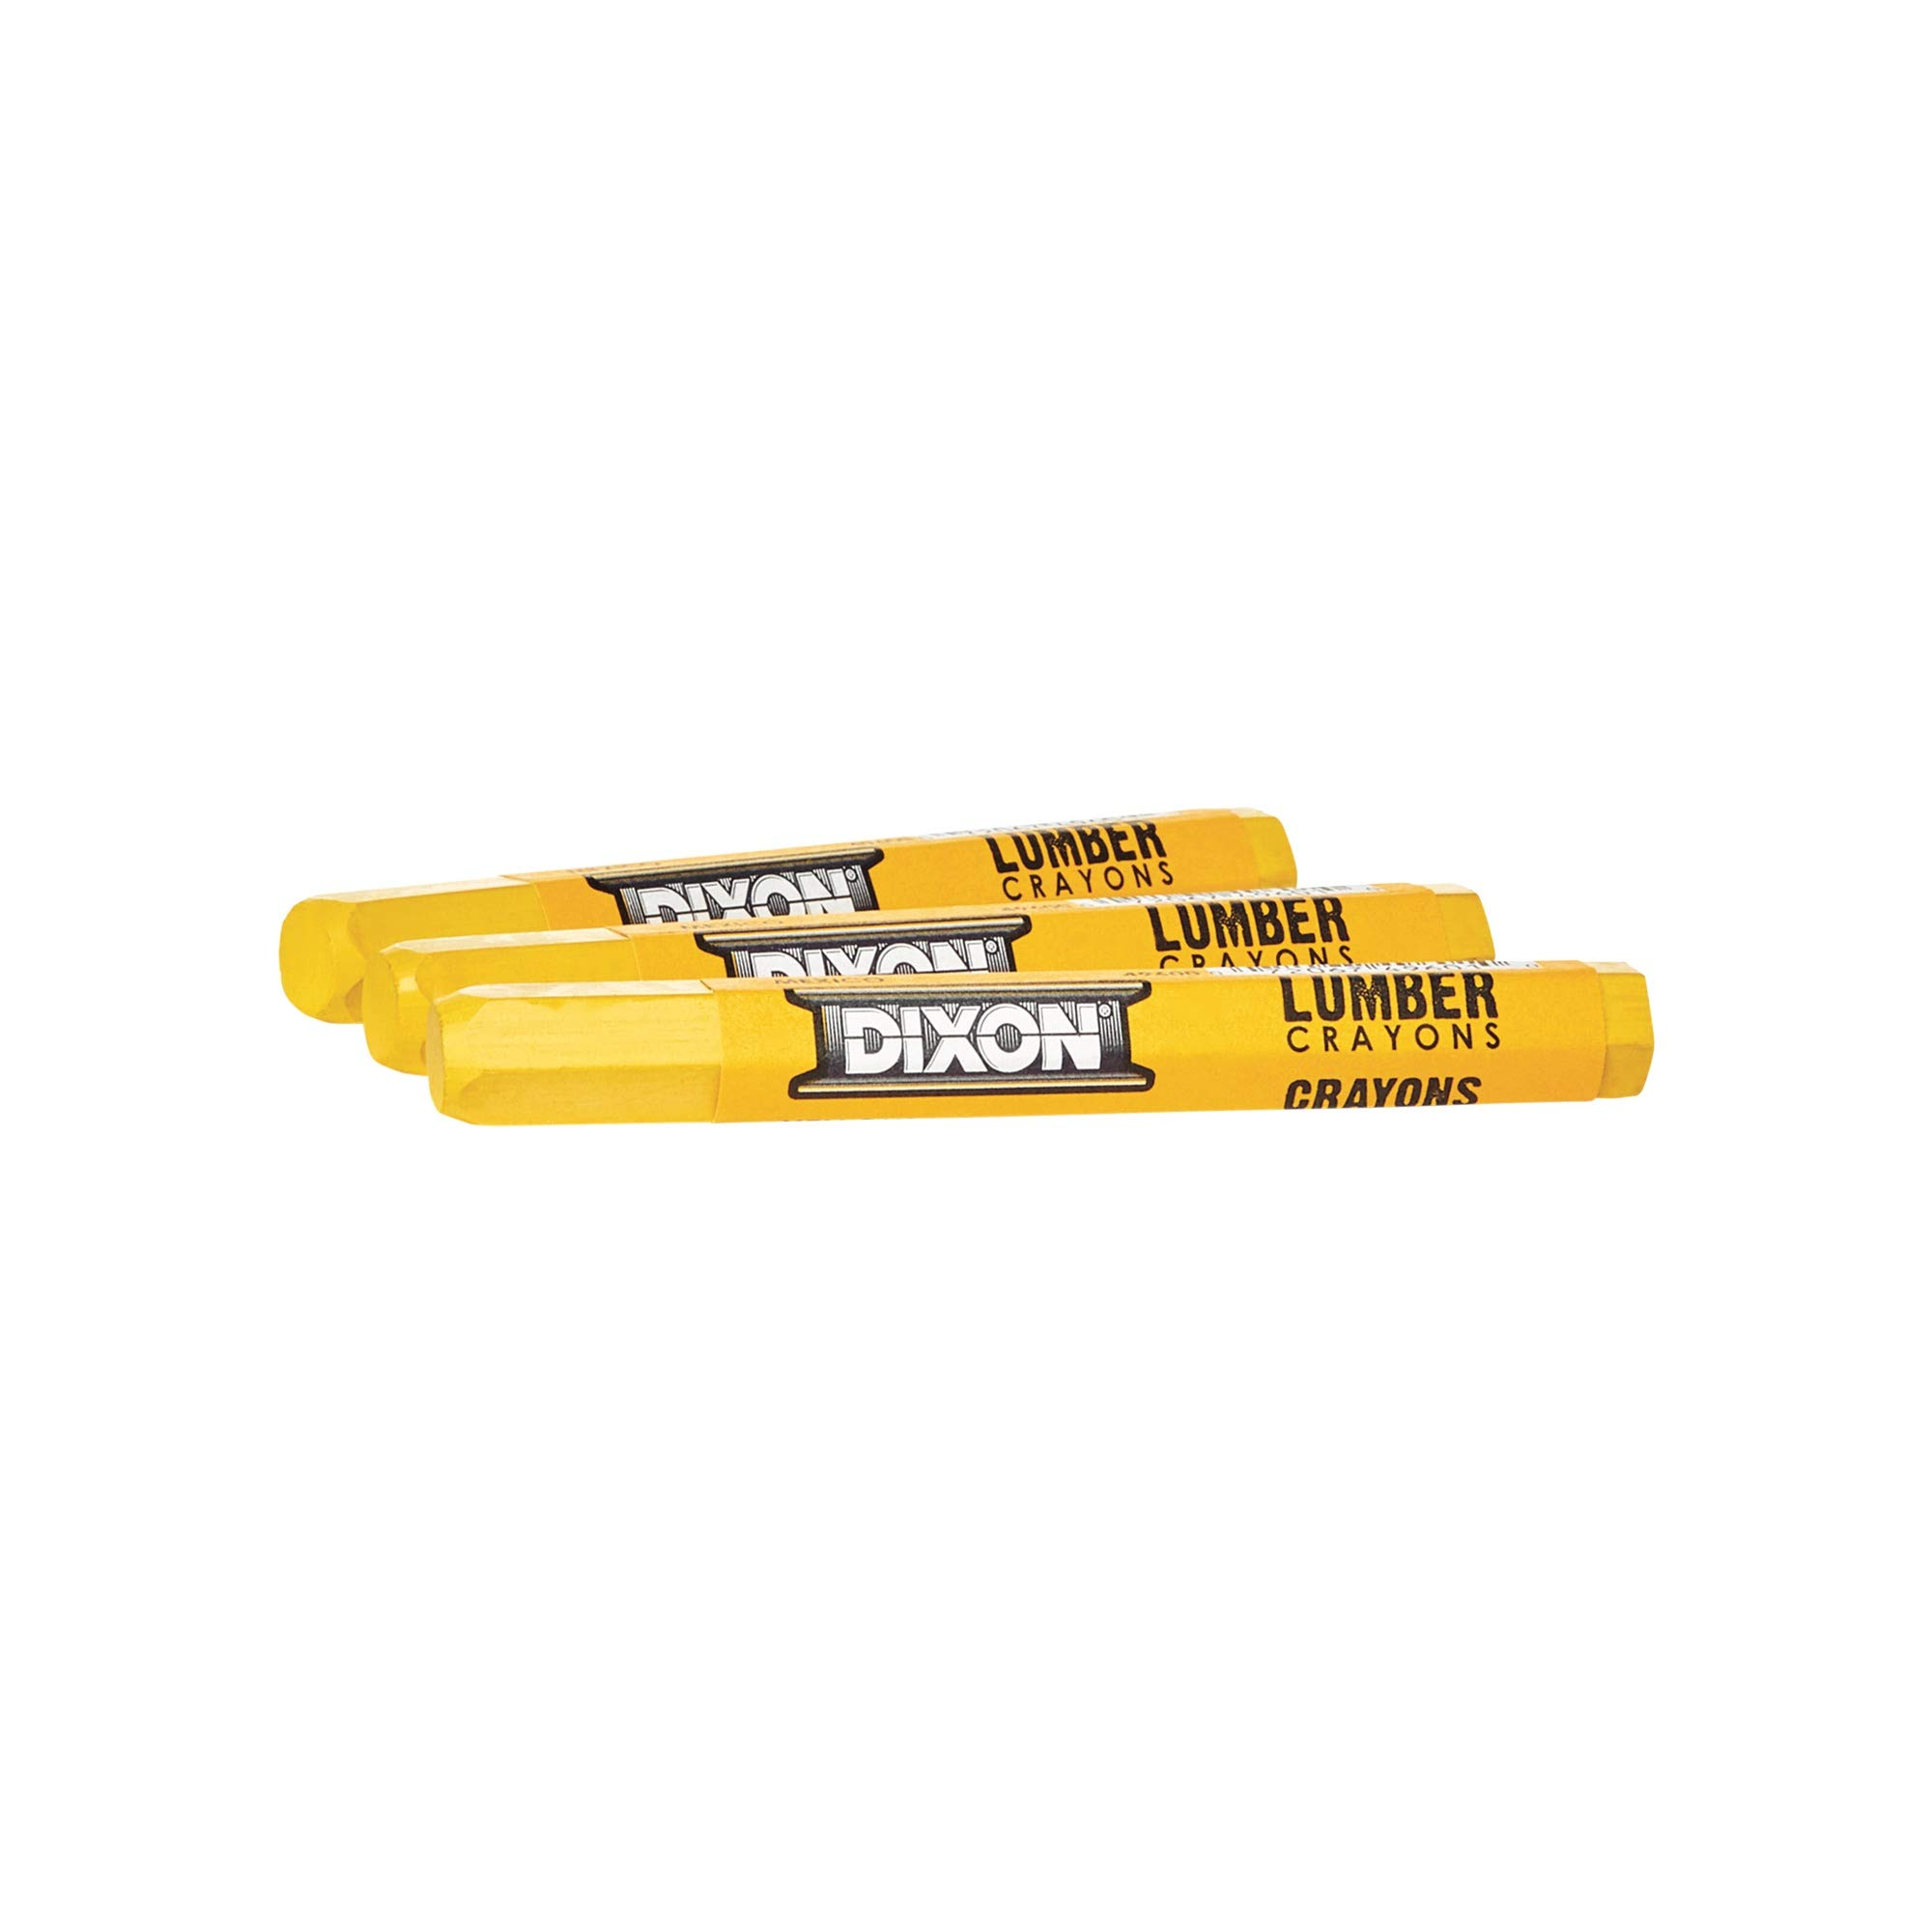 Dixon Industrial Lumber Marking Crayons, 4.5'' x 1/2'' Hex, Yellow, 12-Pack (49600) by Dixon